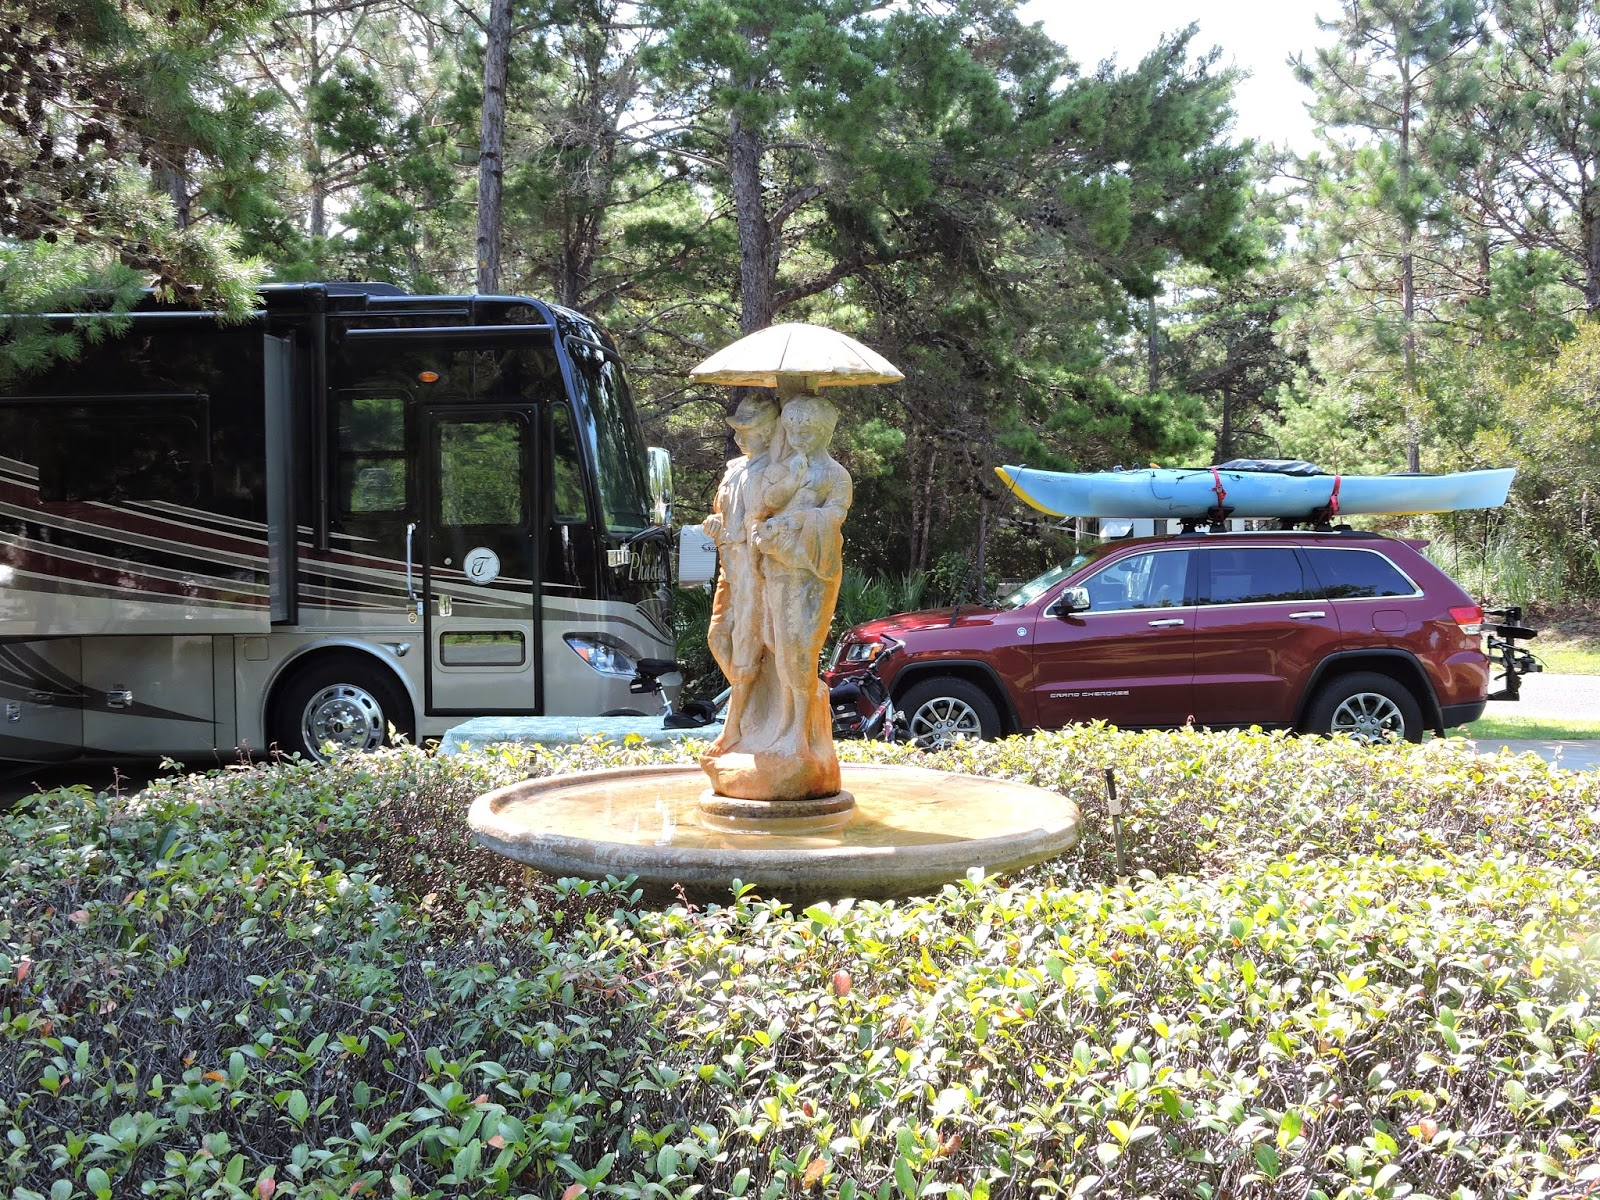 our site at the park was amazing shaded by pine trees all around us and our own little park area next to us with a bird bath and statue